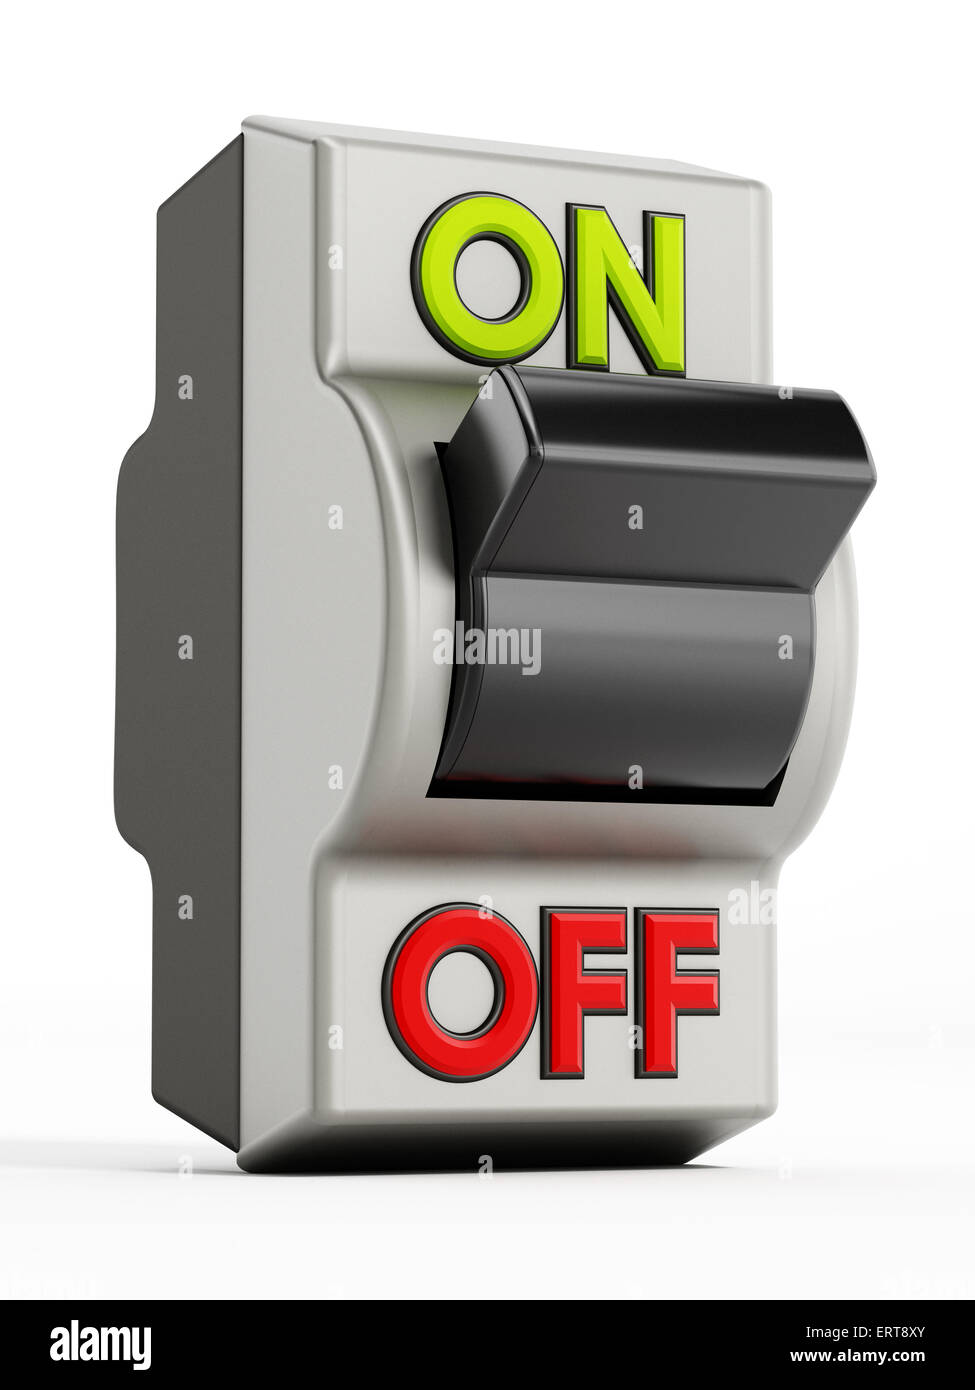 On off button isolated on white background - Stock Image